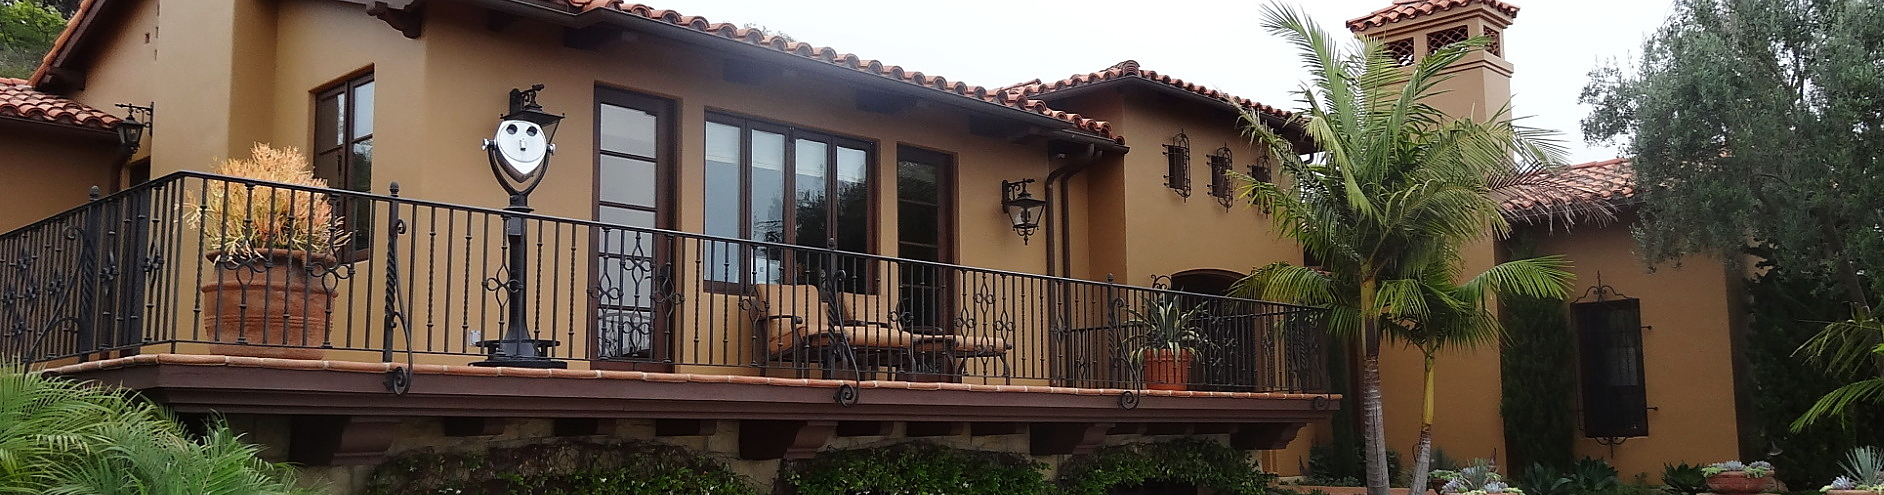 Montecito Exterior Painting and Wood Refinishing